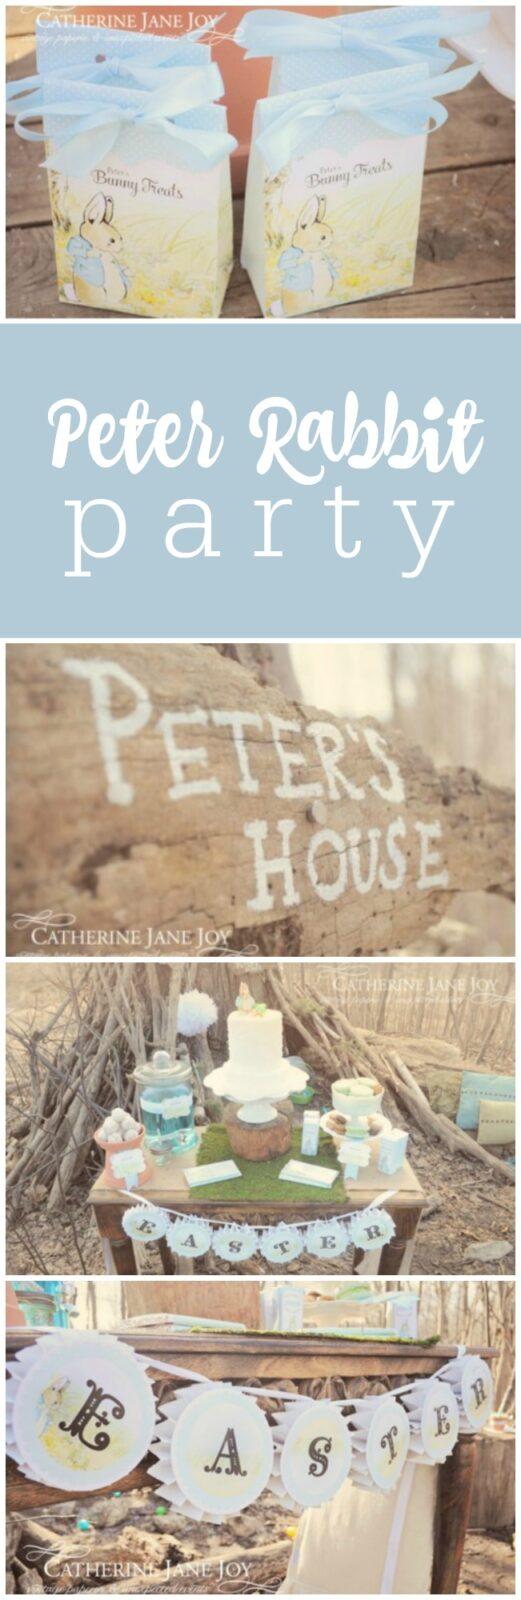 Peter Rabbit Easter Bunch by Catherine Jane Joy featured on The Party Teacher